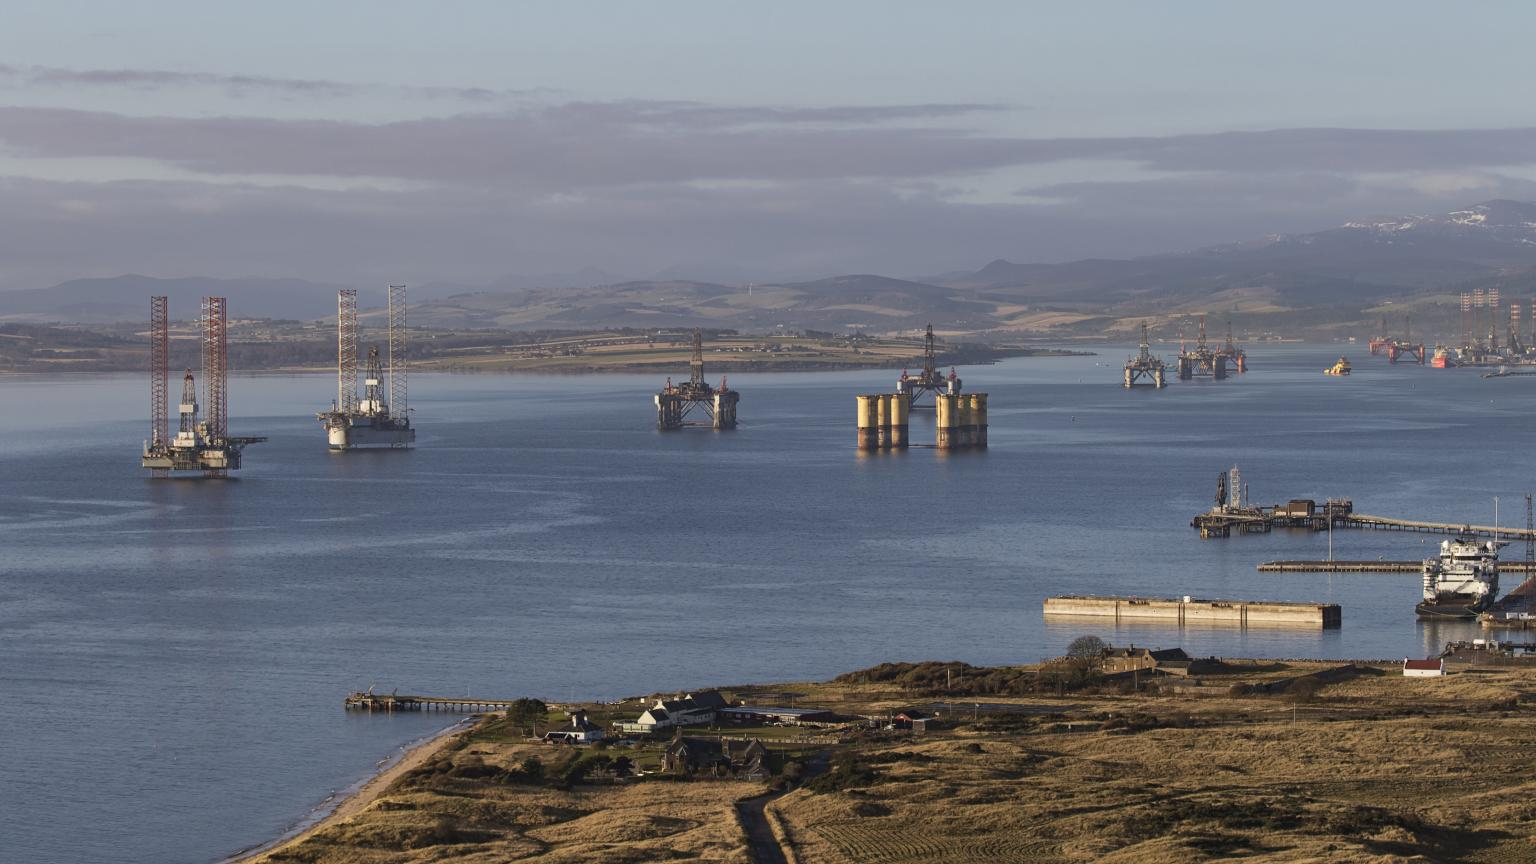 The UK's decommissioning sector is embracing comparative assessment as a valuable planning tool